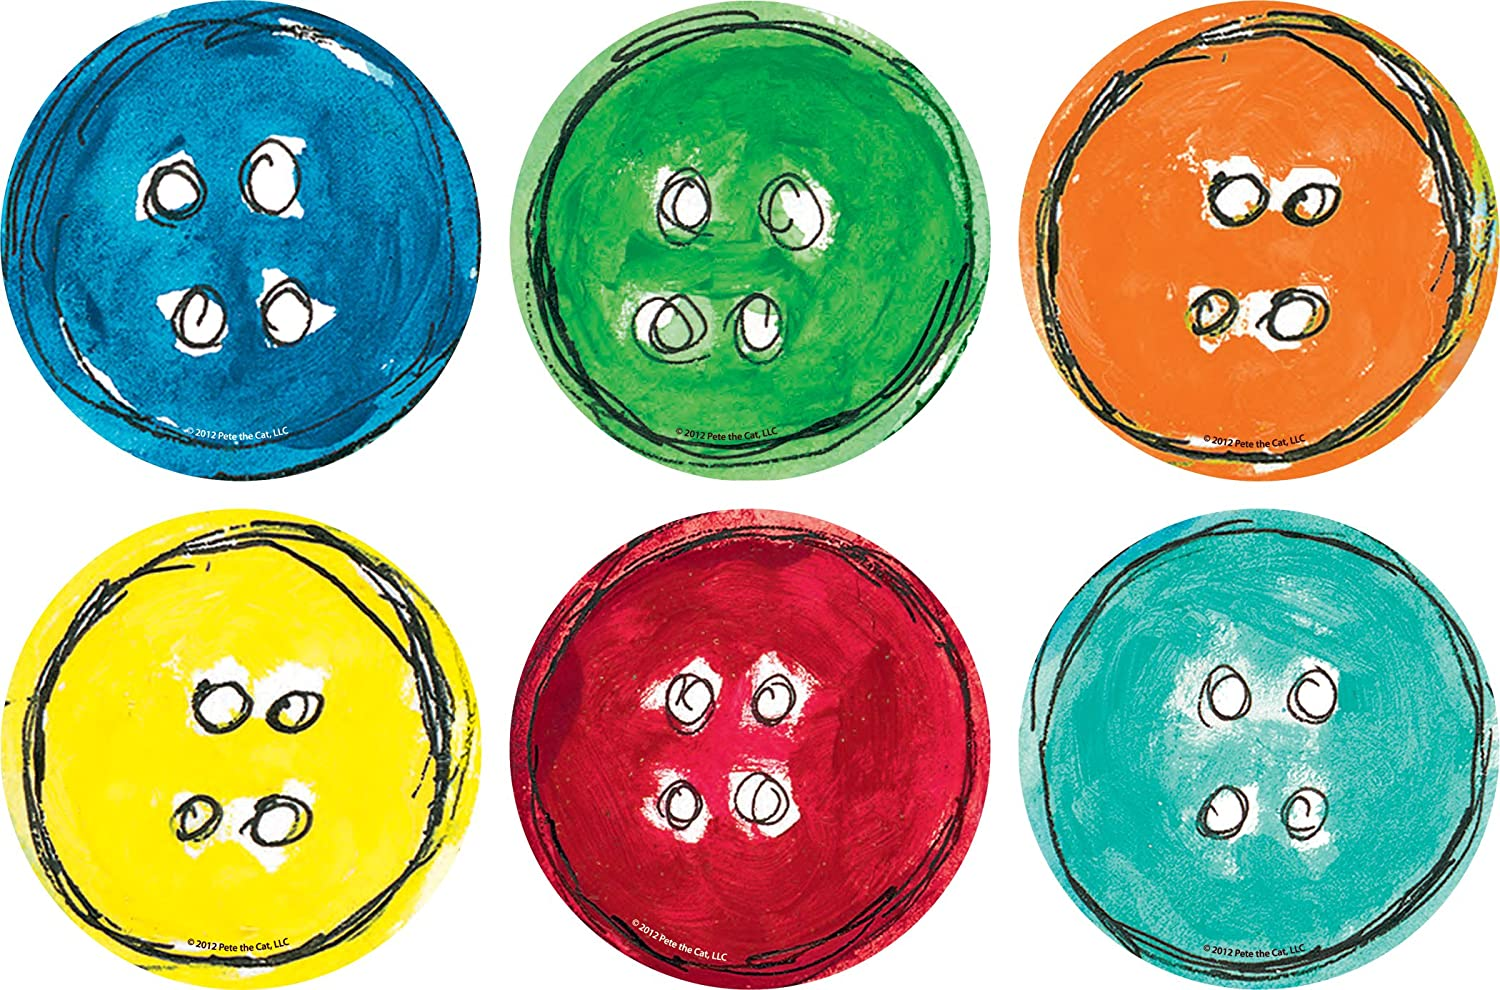 Edupress Spot On Carpet Markers: Pete The Cat Groovy Buttons - 4, EP62013